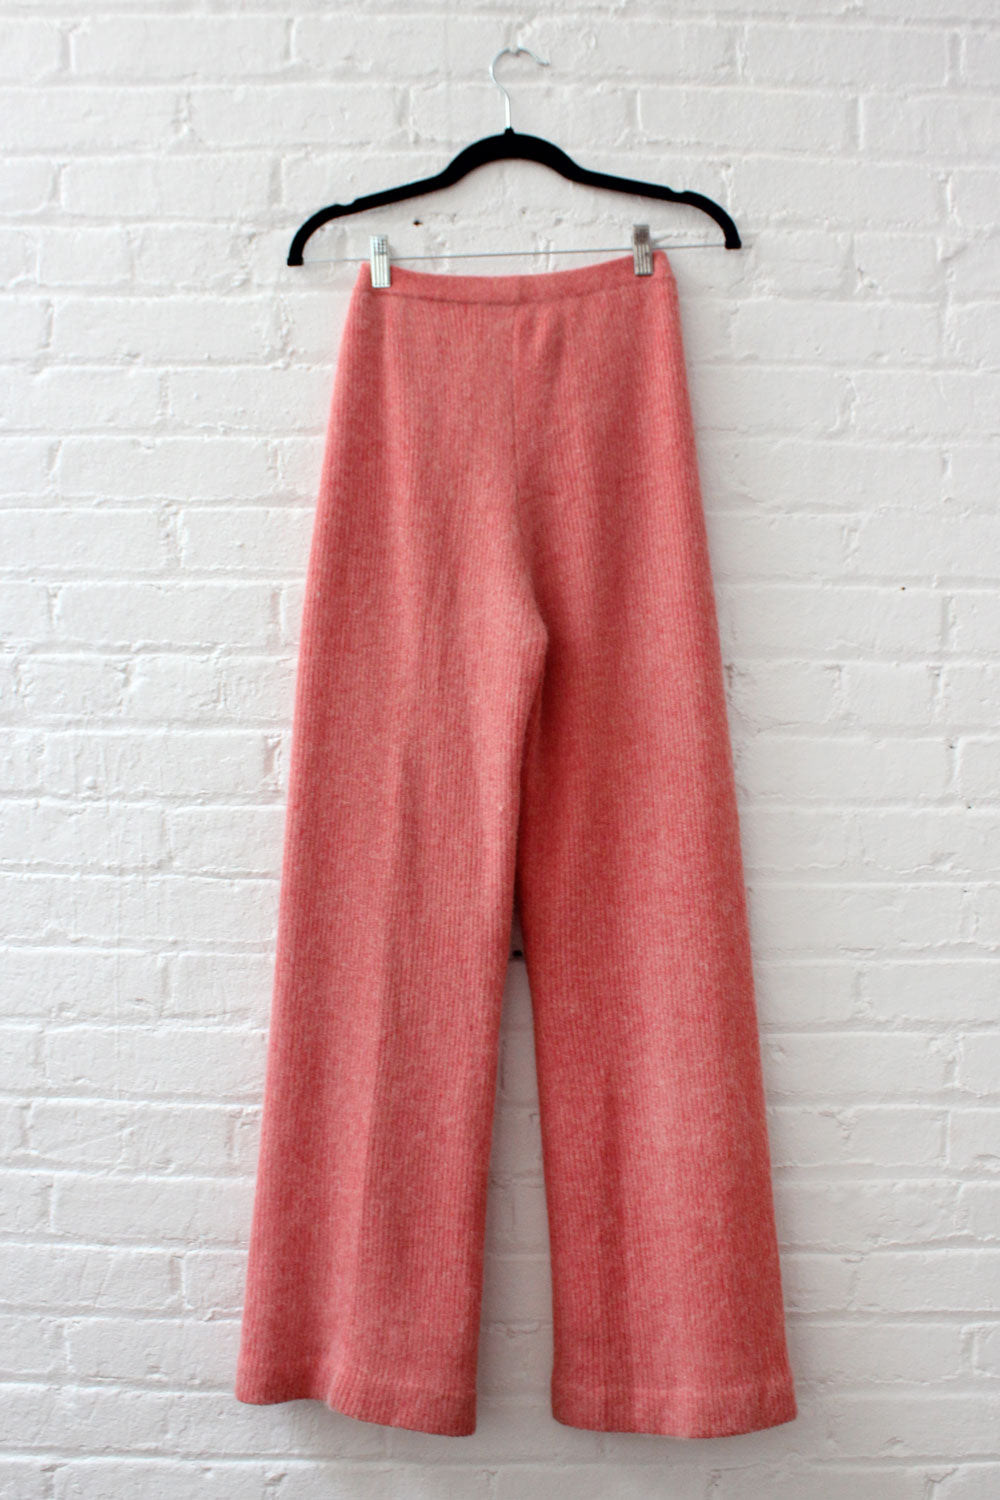 Salmon Knit 2pc Pant Ensemble S/M